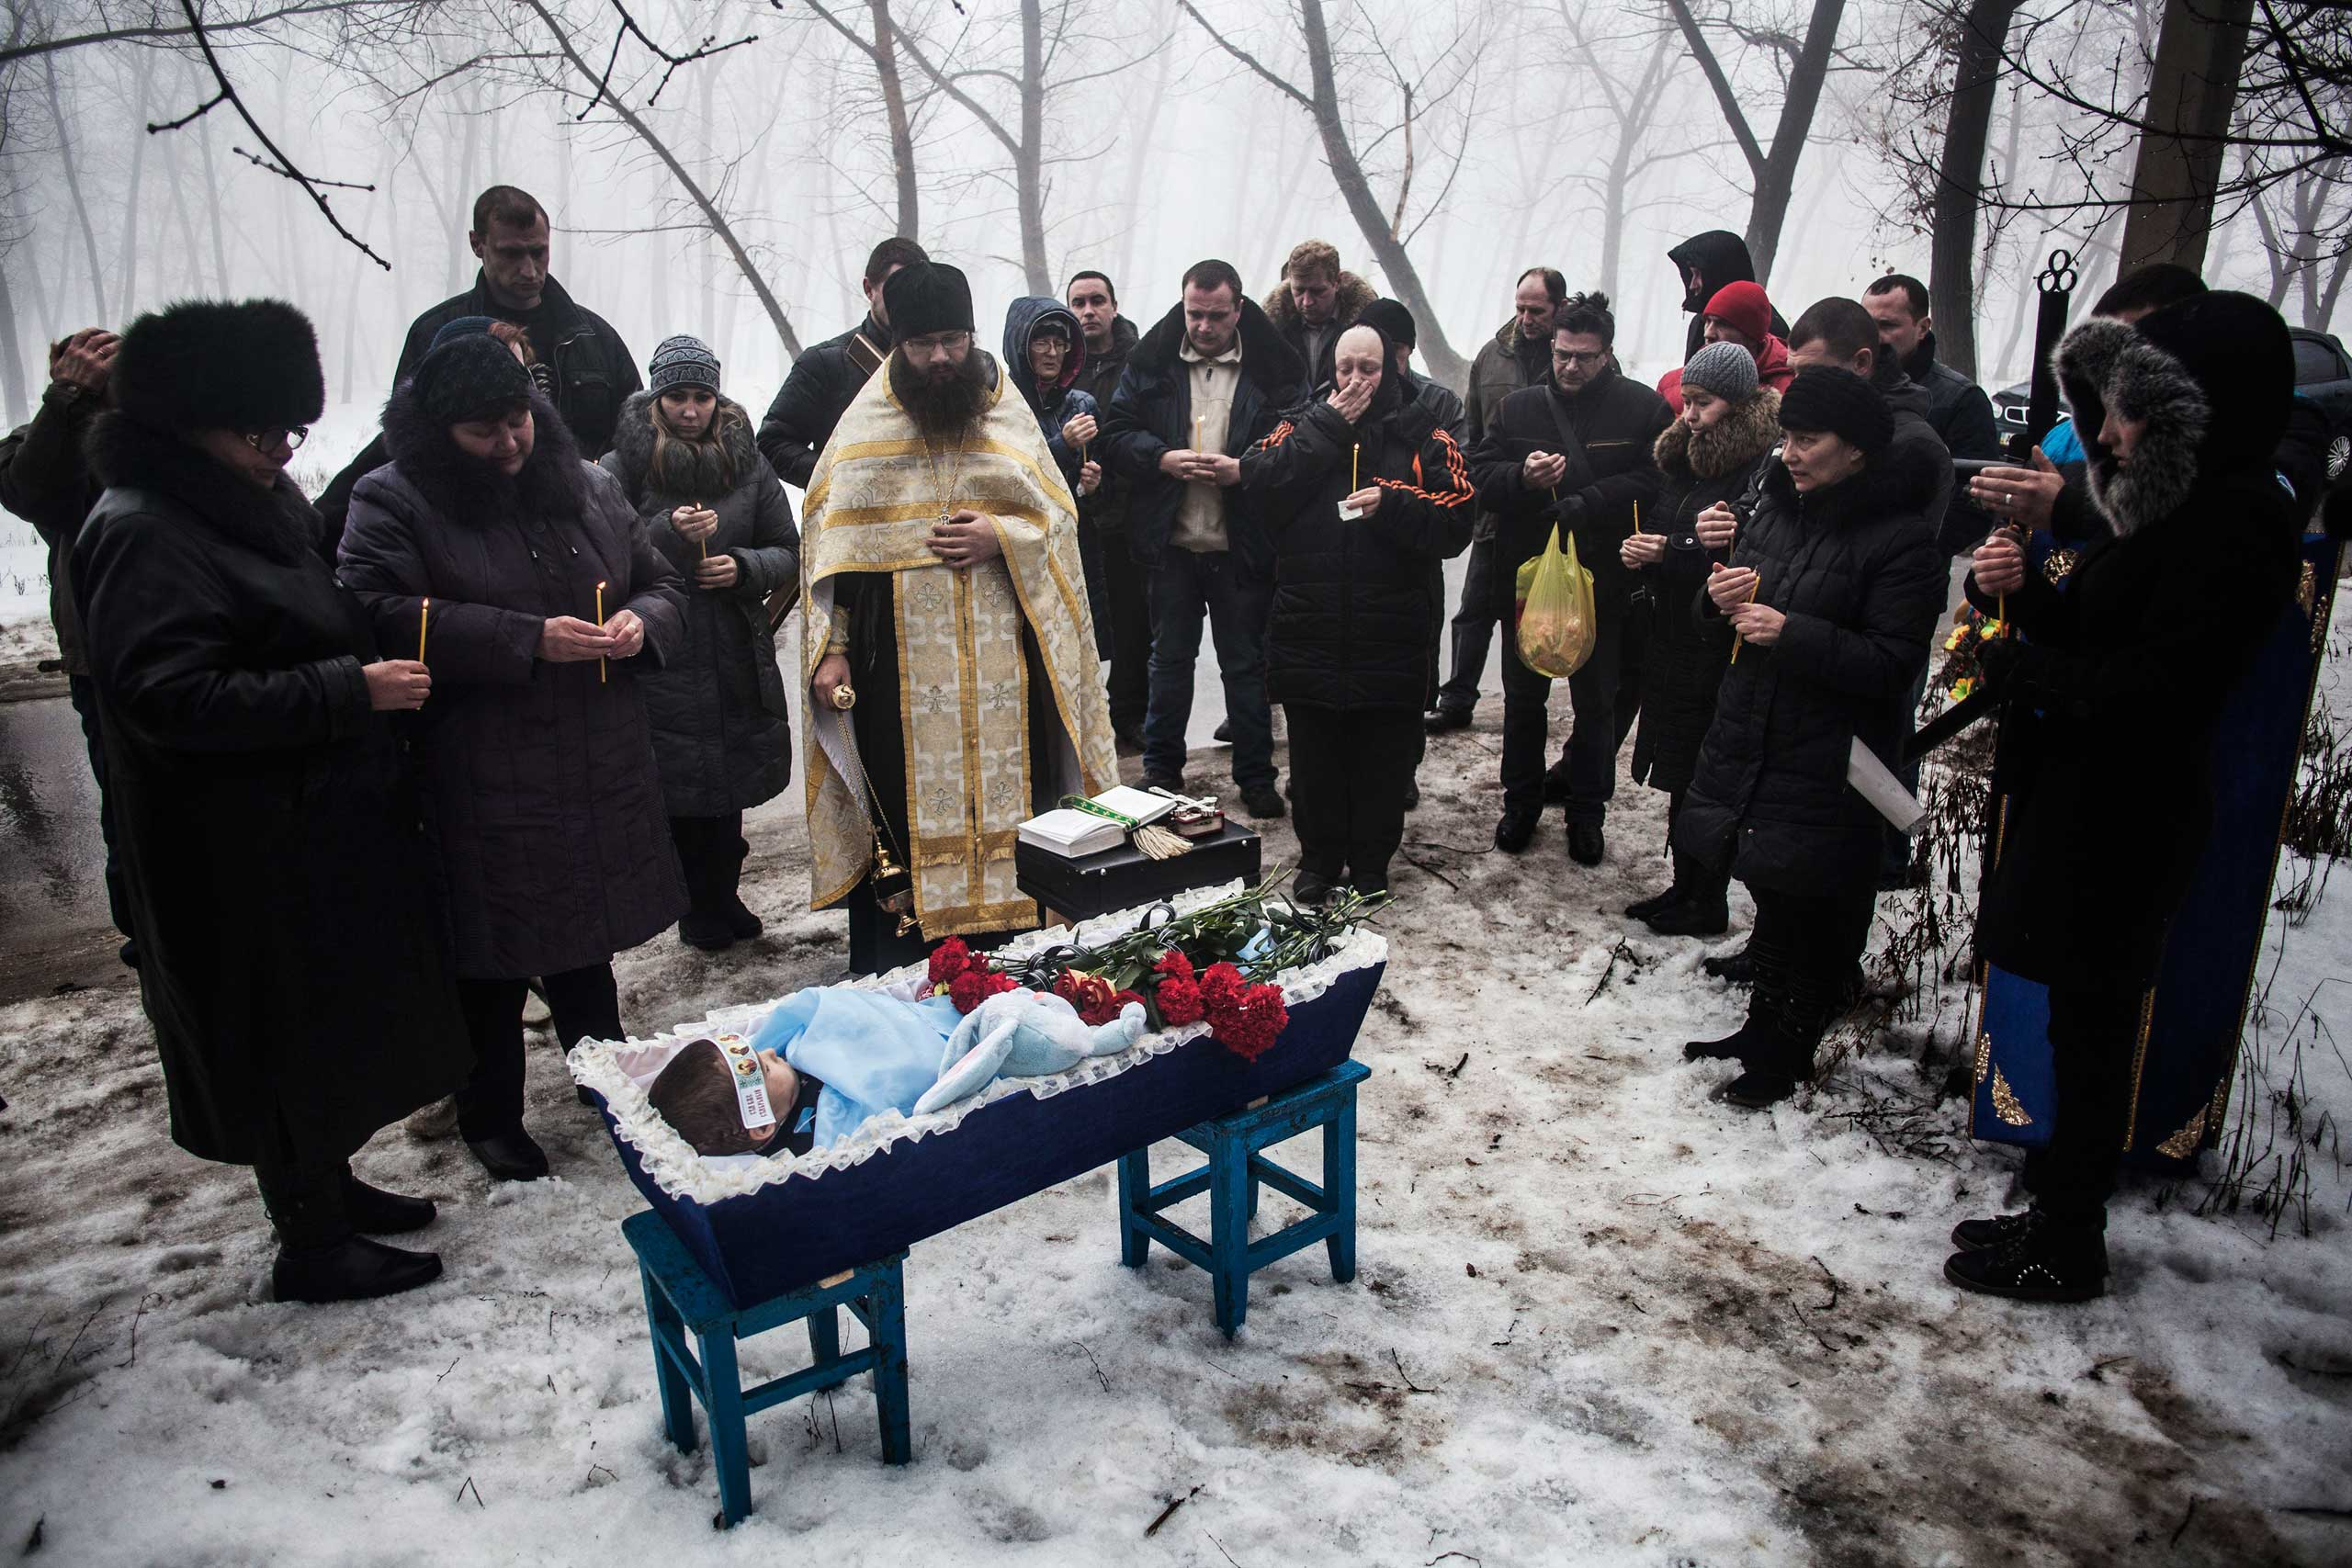 Mourners gather around a coffin bearing Artiam, 4, who was killed in a Ukrainian army artillery strike, during his funeral in Kuivisevsky district on the outskirts of Donetsk, eastern Ukraine. Jan. 20, 2015.